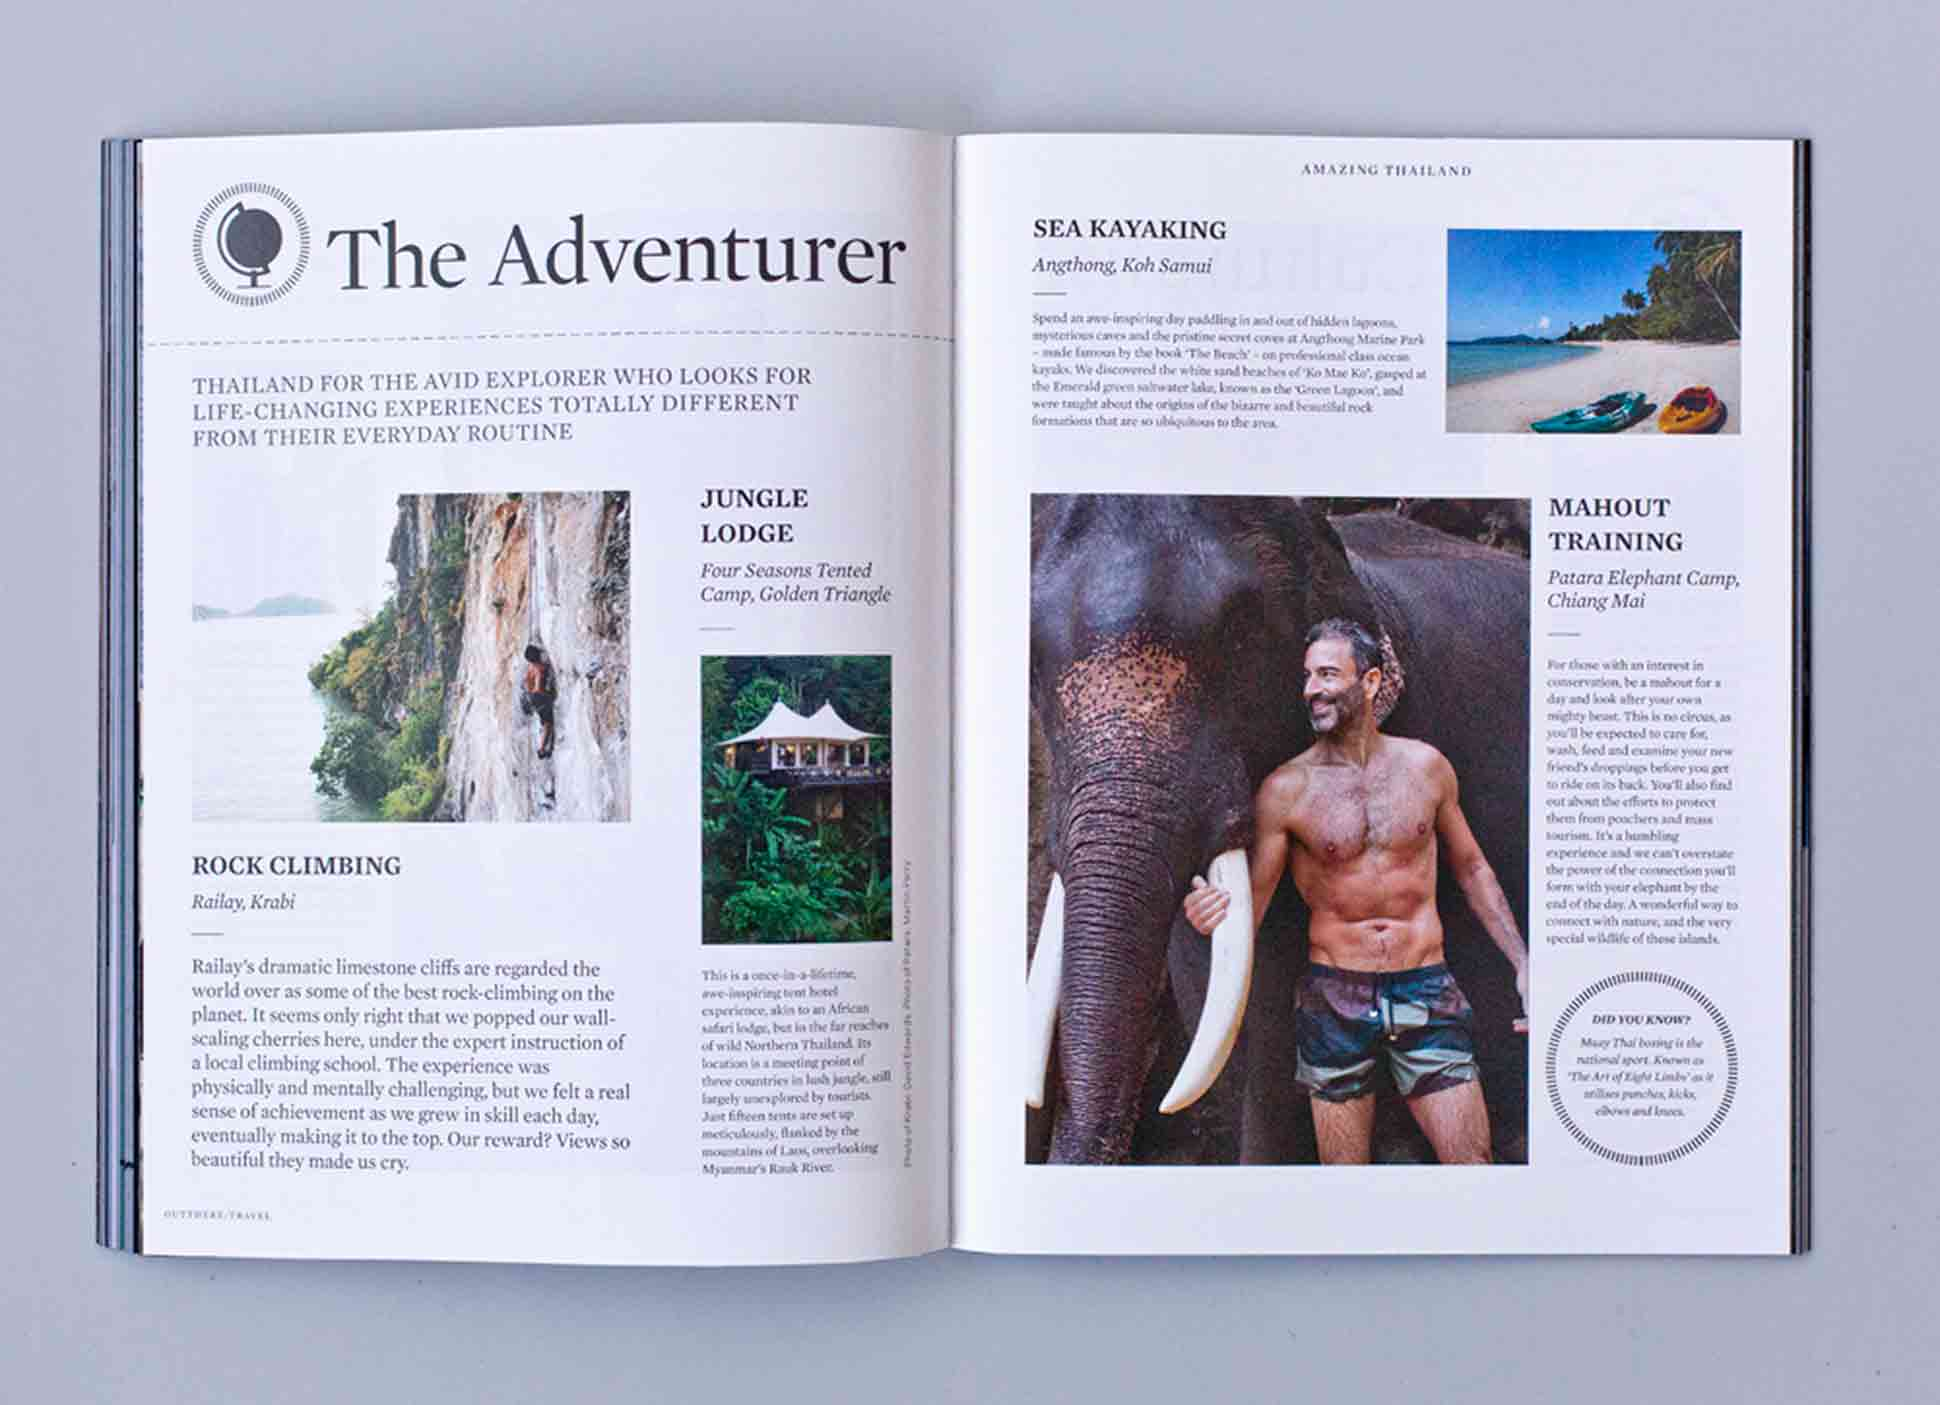 OutThere/Travel Great British Issue preview - Thailand Gay Supplement